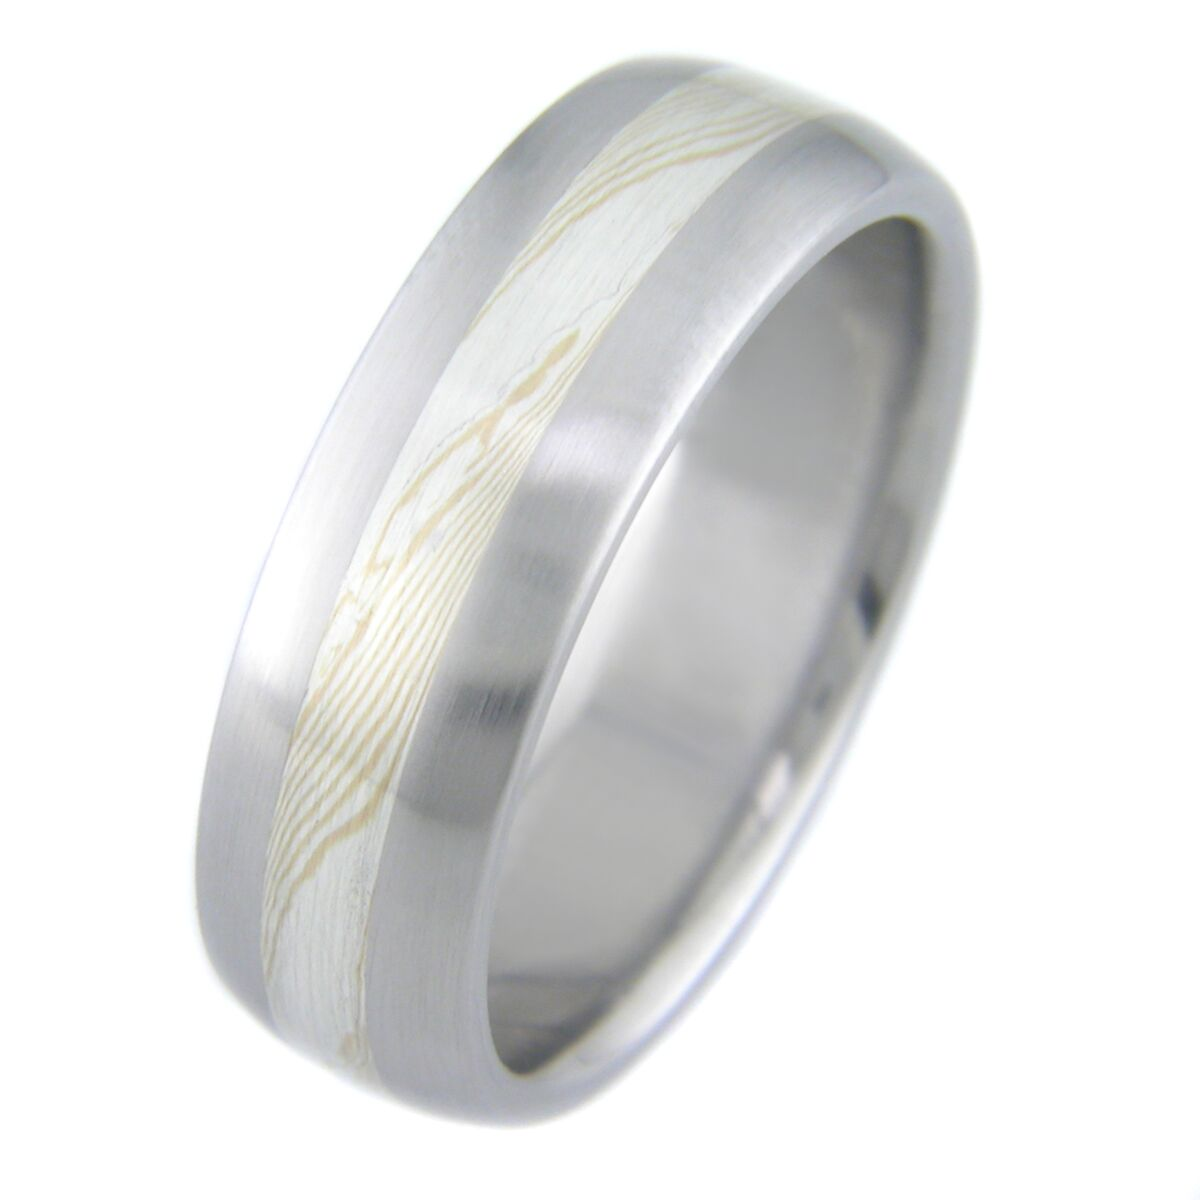 inner ring etched and grain mokume karat band mokum flat gane silver rings topped white palladium gold woodgrain catalog sterling wood